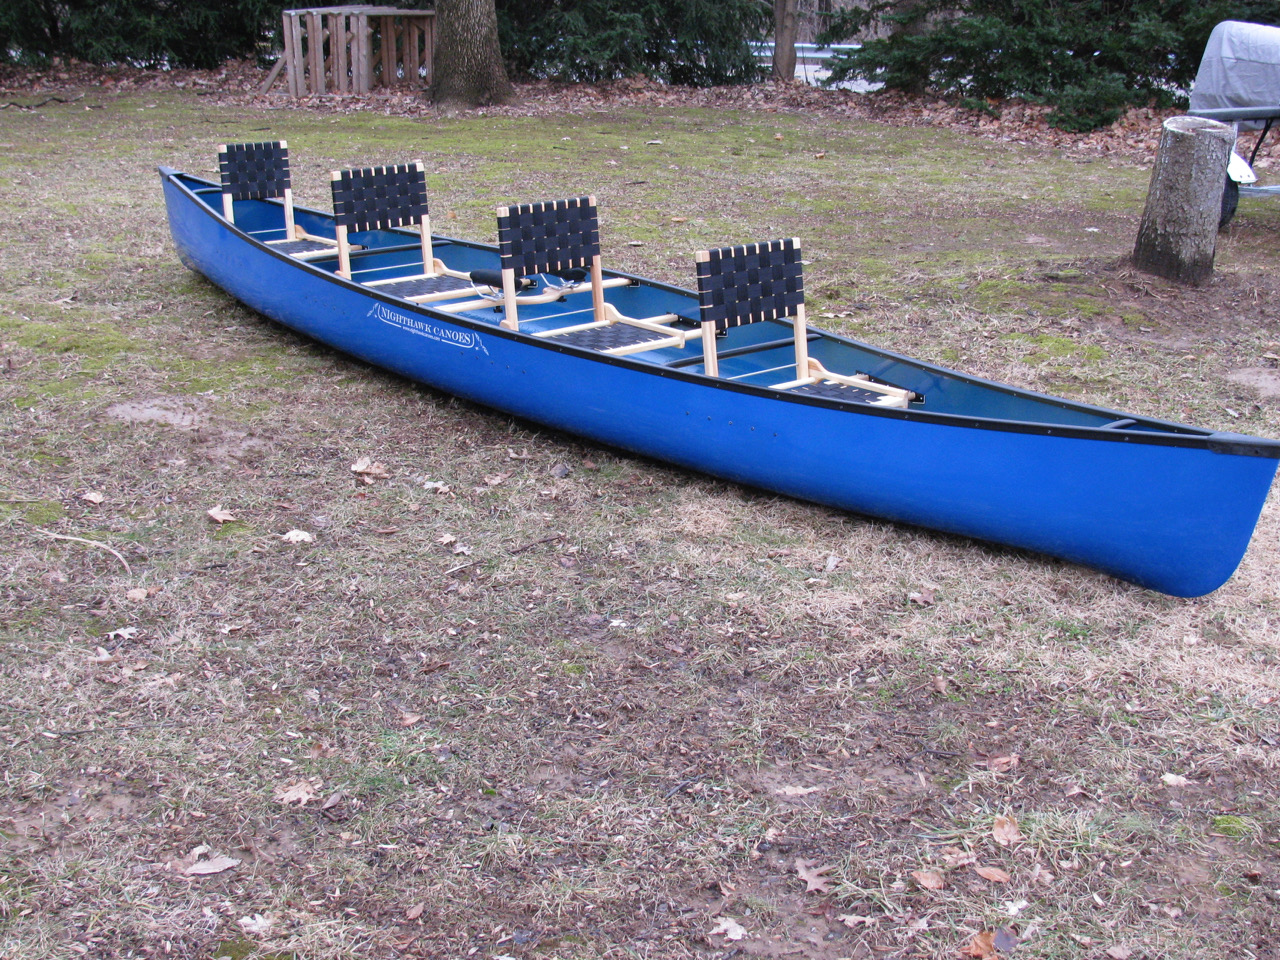 Pegasus 18.5, Epoxy color- keel blue, black trim, 4 seats, seat back